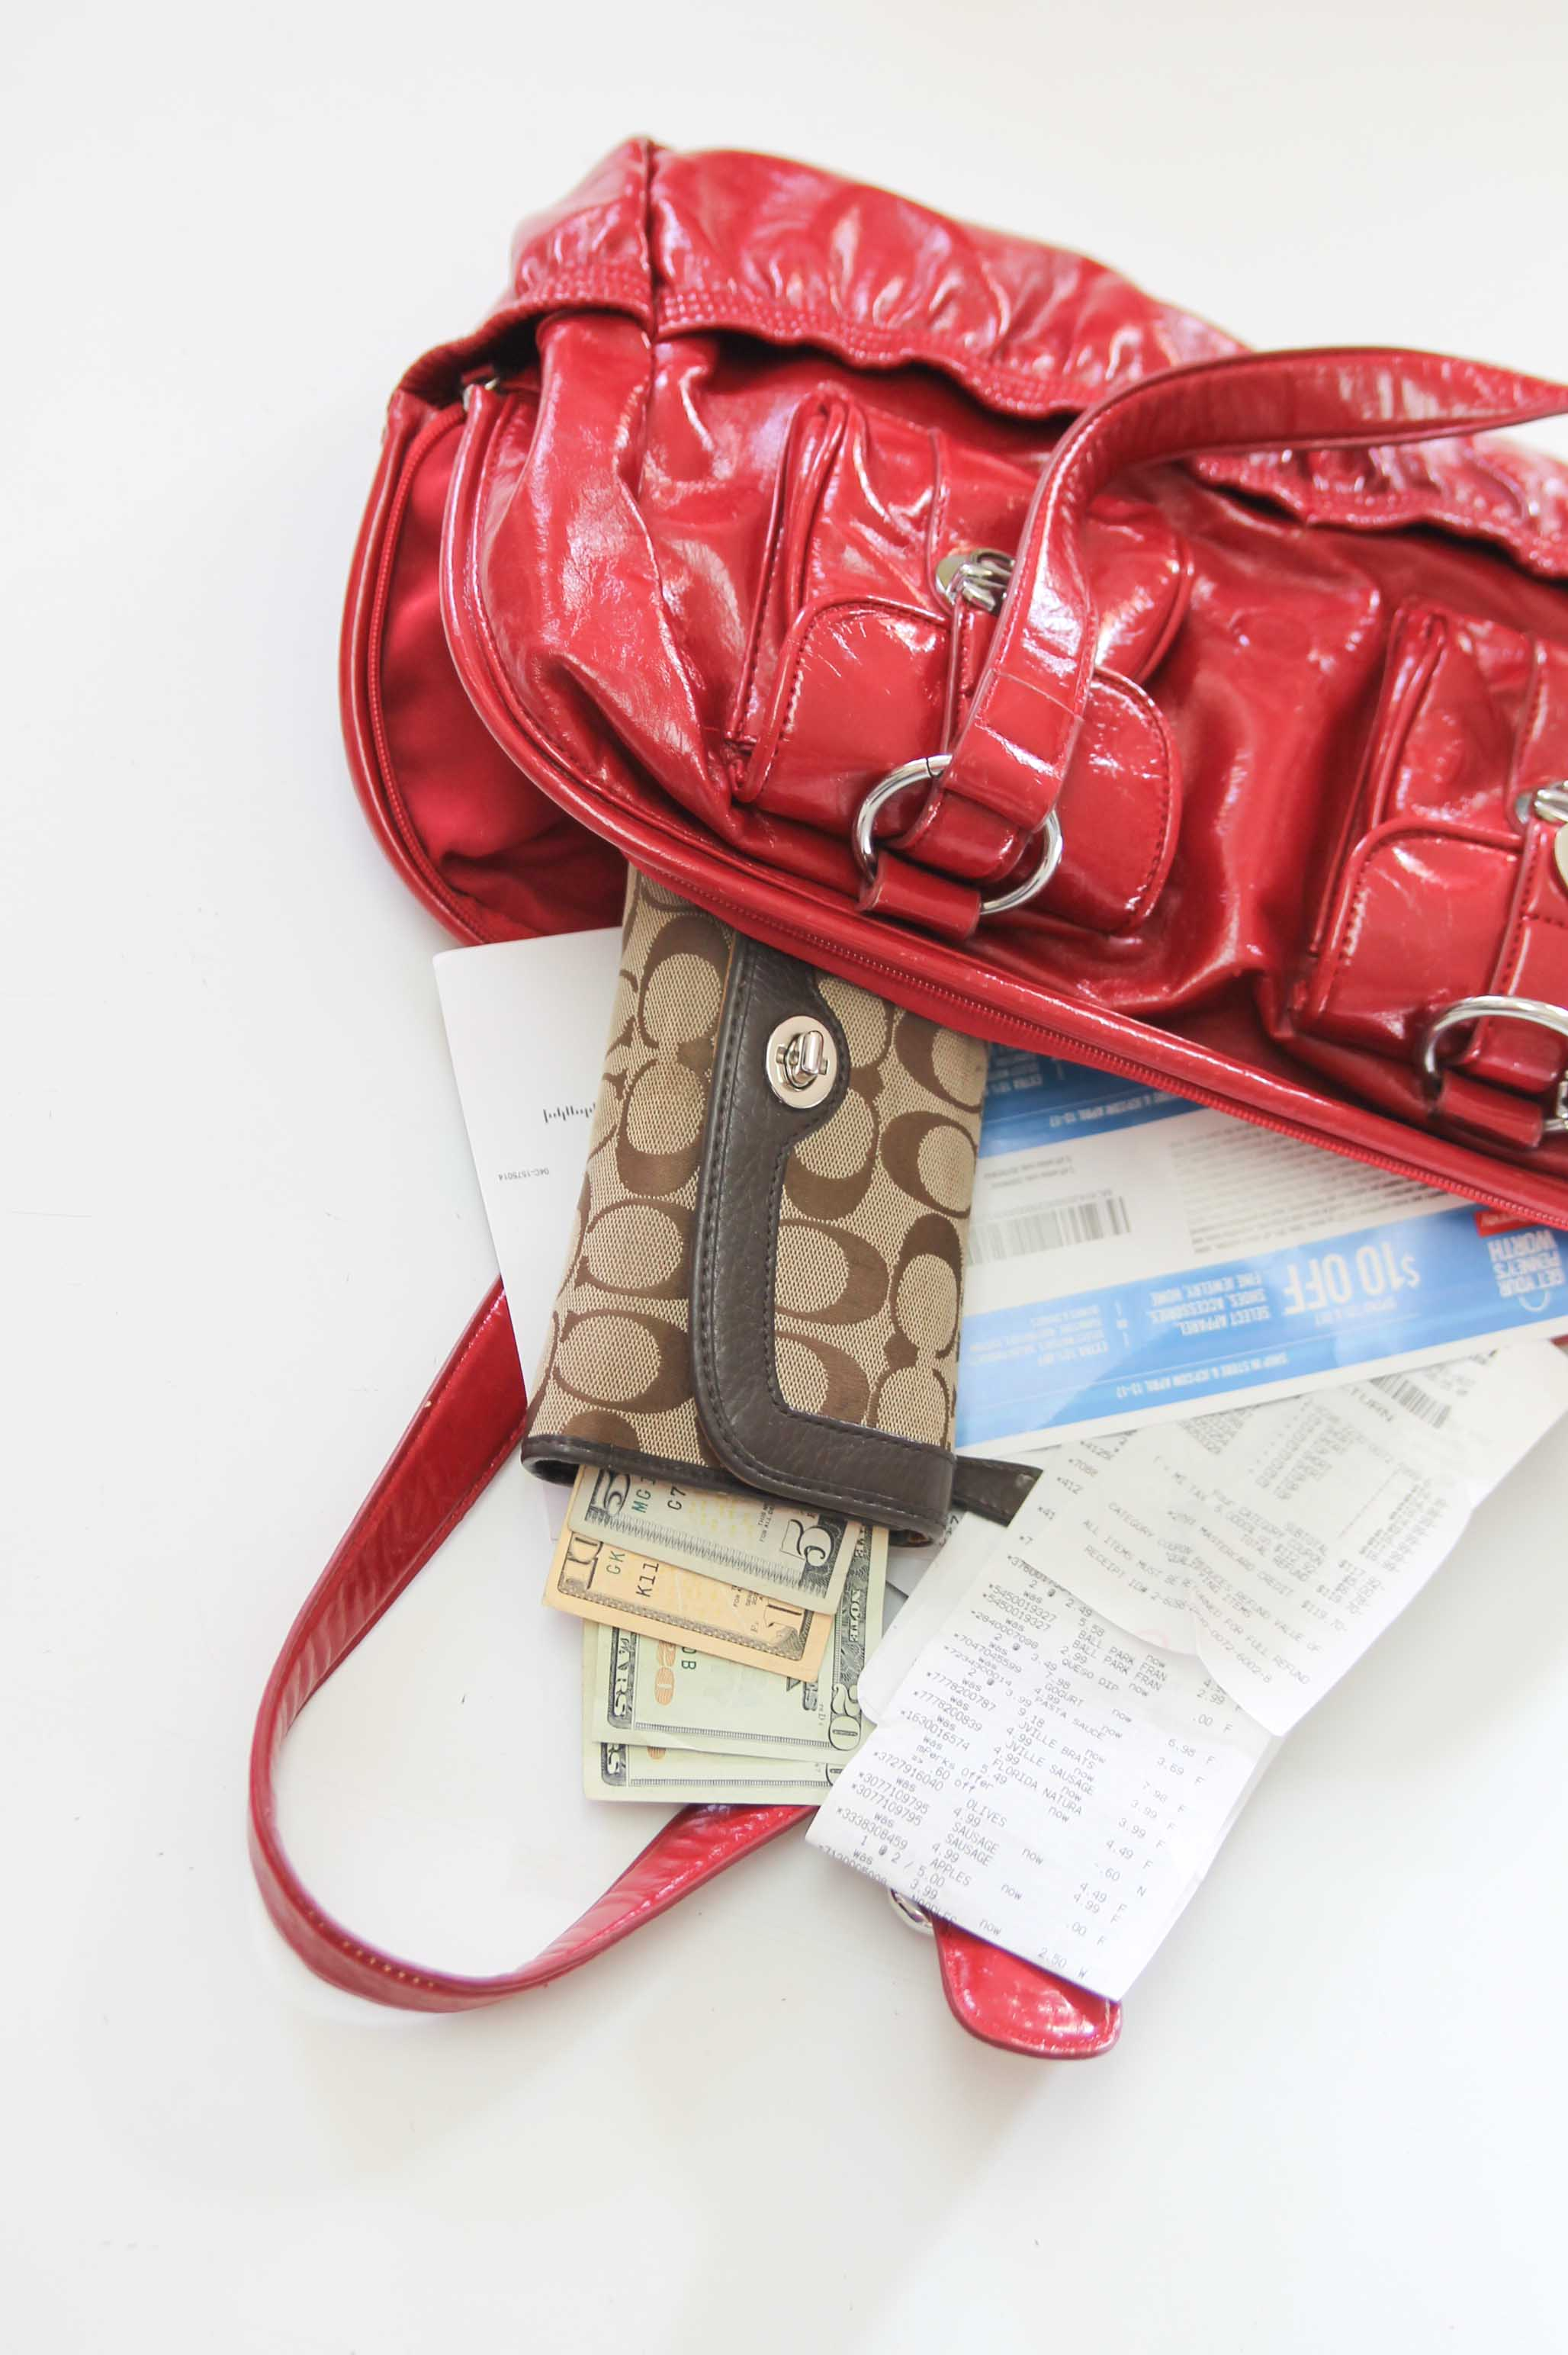 Learn to Save More with Groupon Coupons